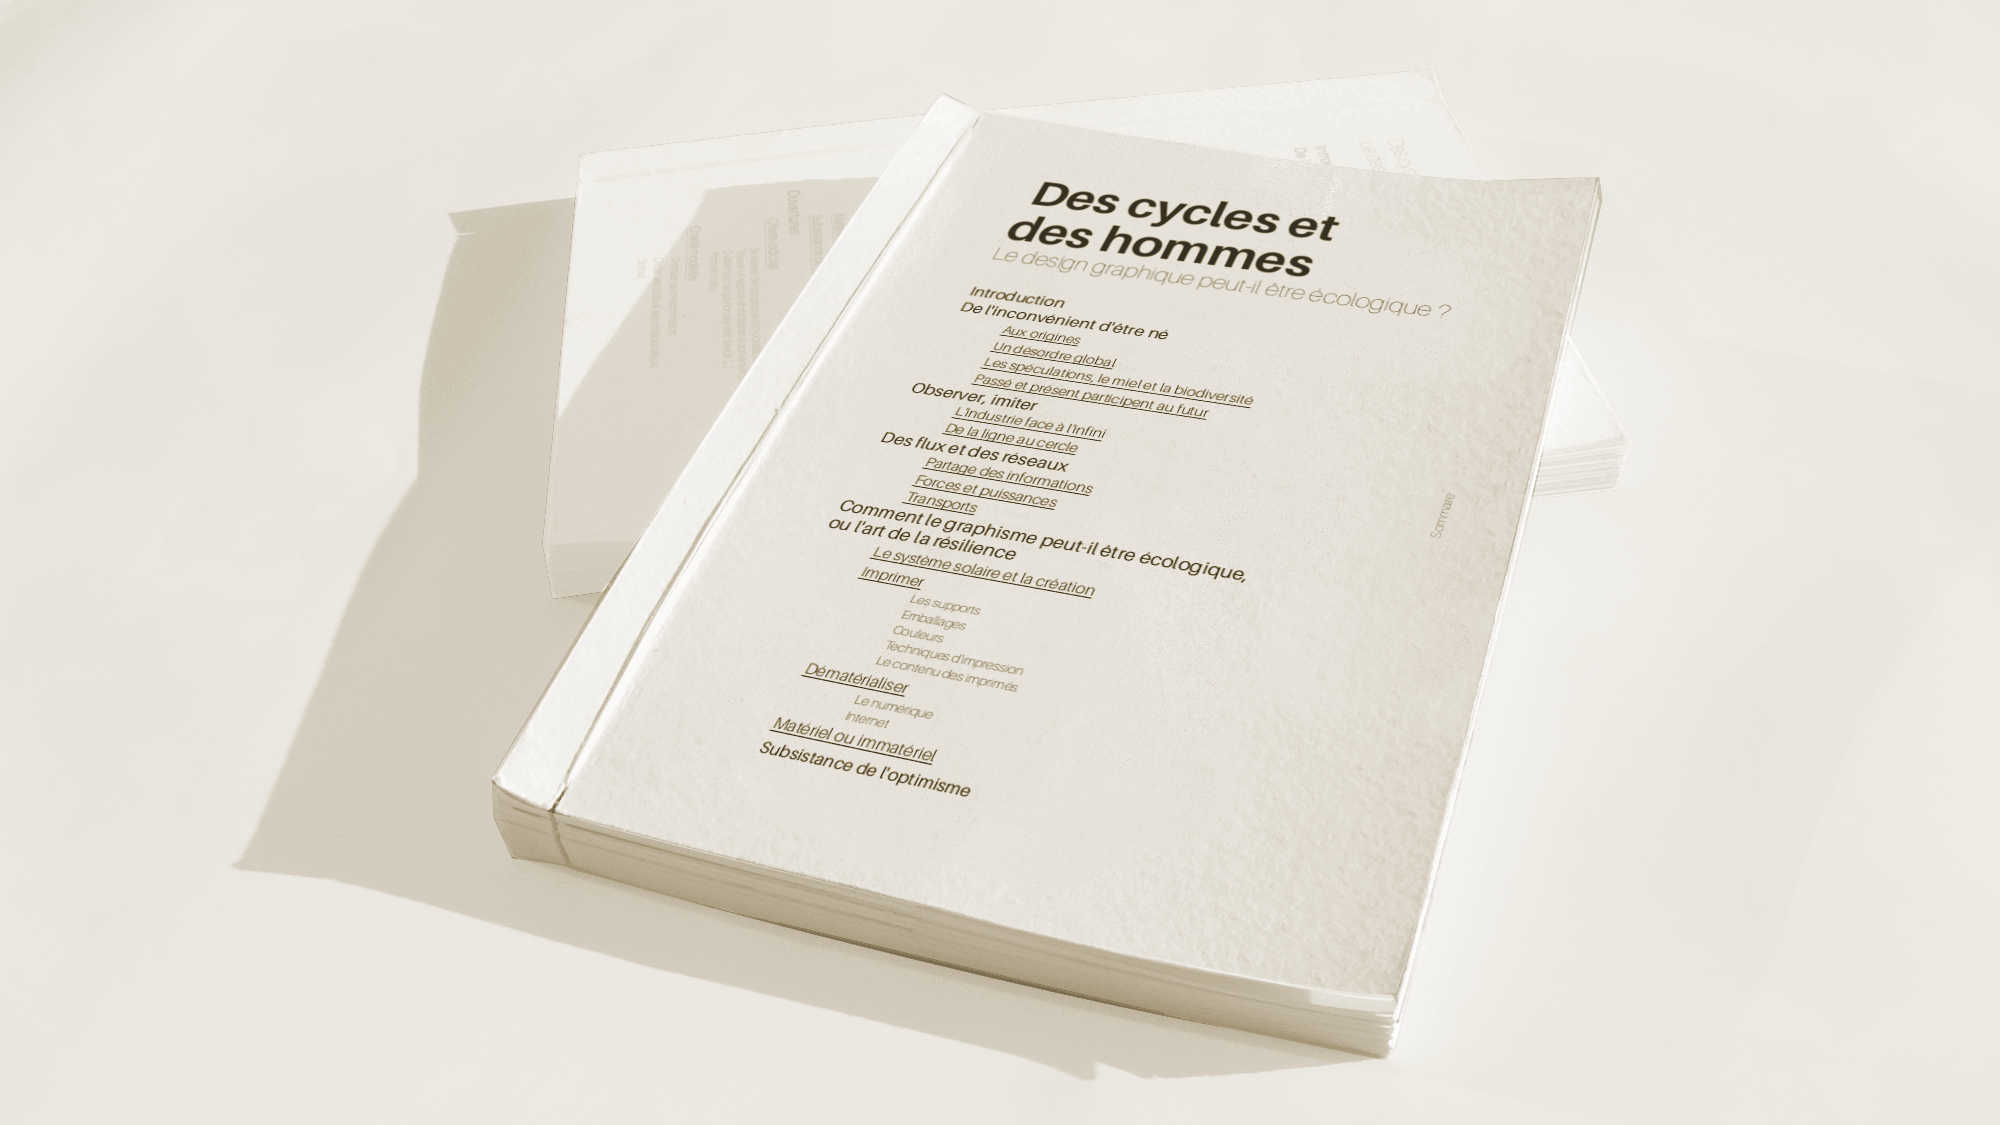 2 white copy of the essai about ethical and ecological graphic design are stacked on each other front cover visible.